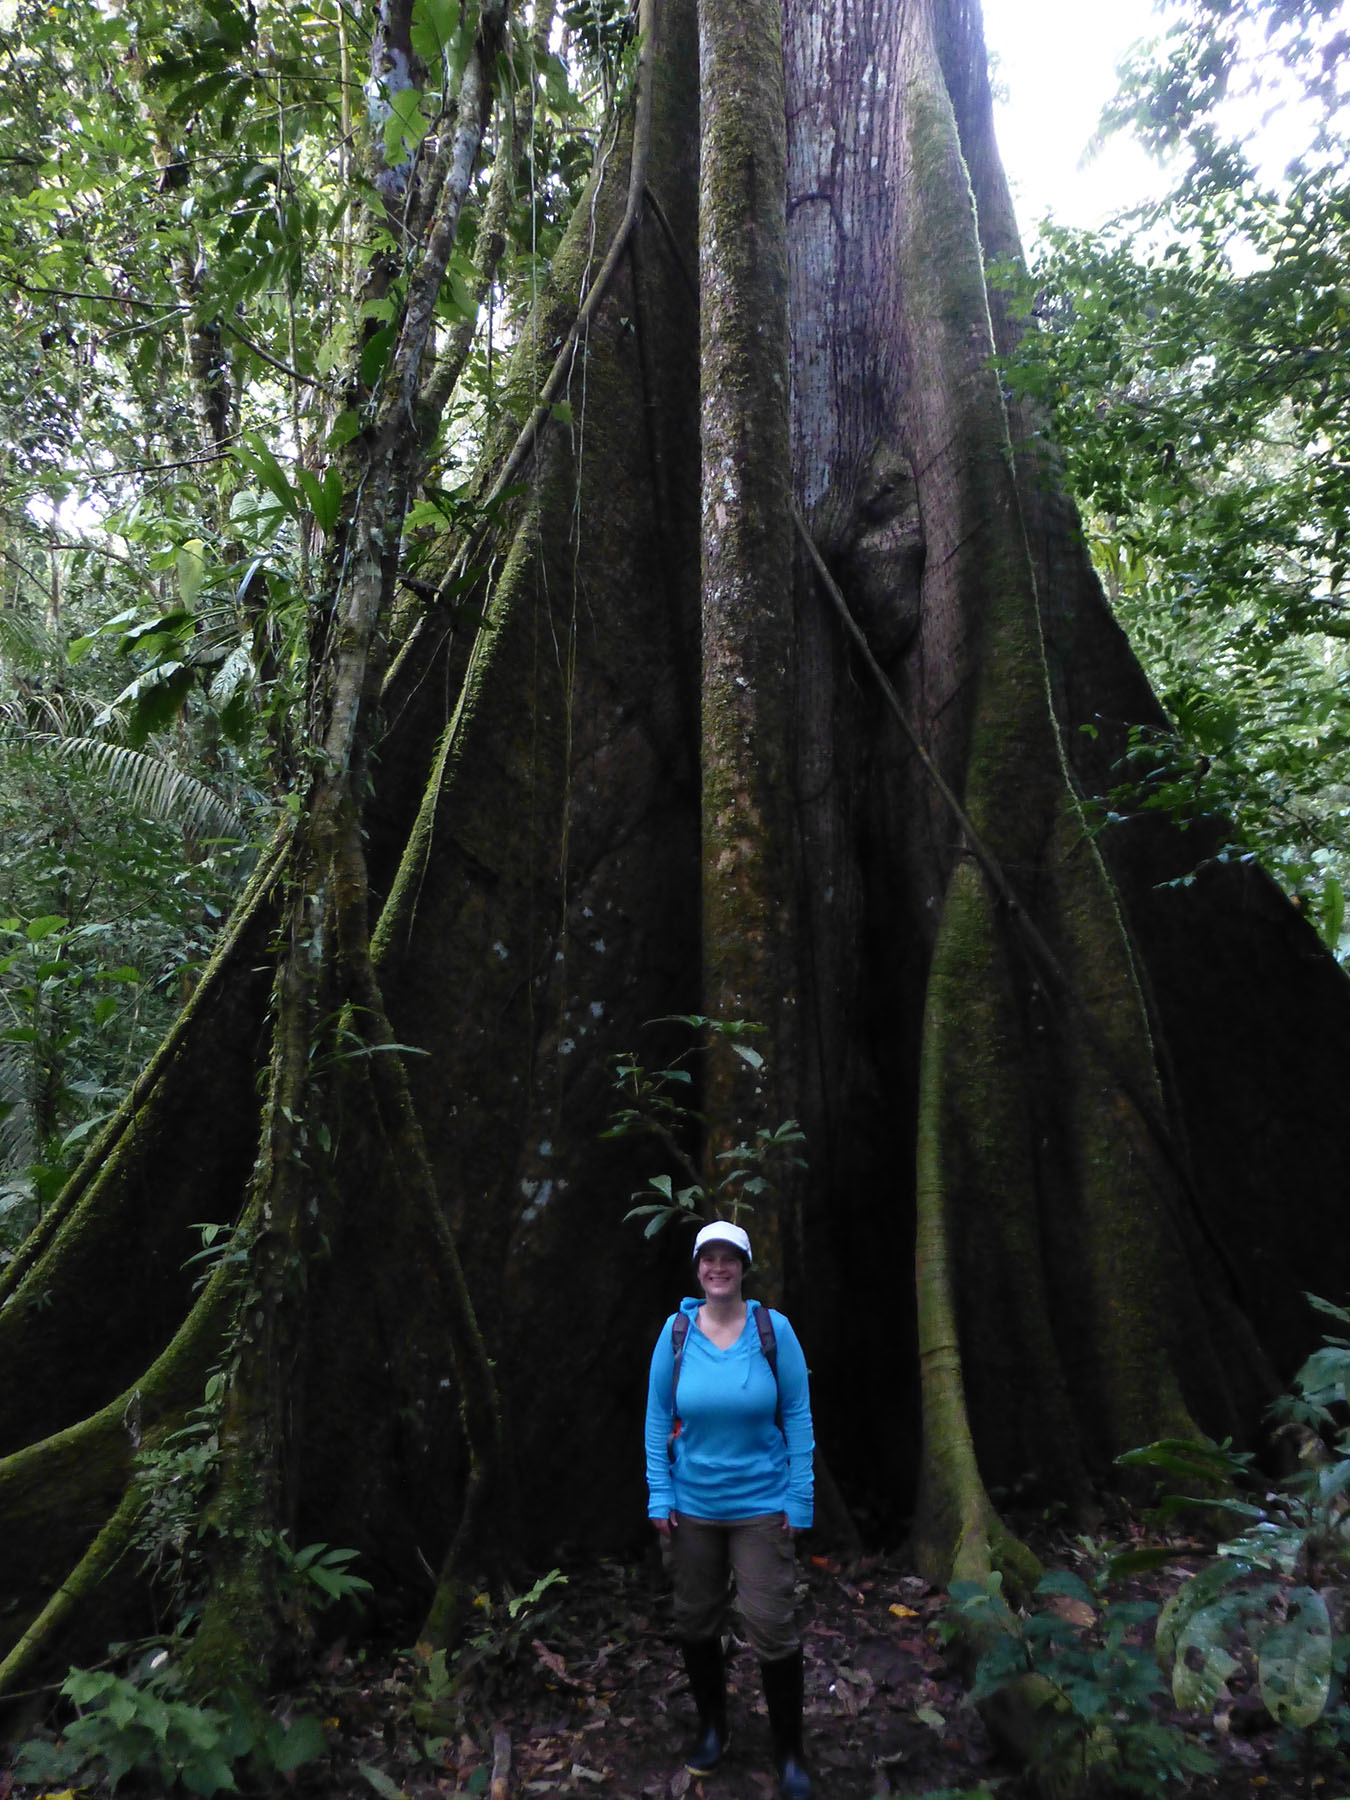 Katie in front of a Kapok Tree. Notice the giant buttress roots pushing out to the sides.